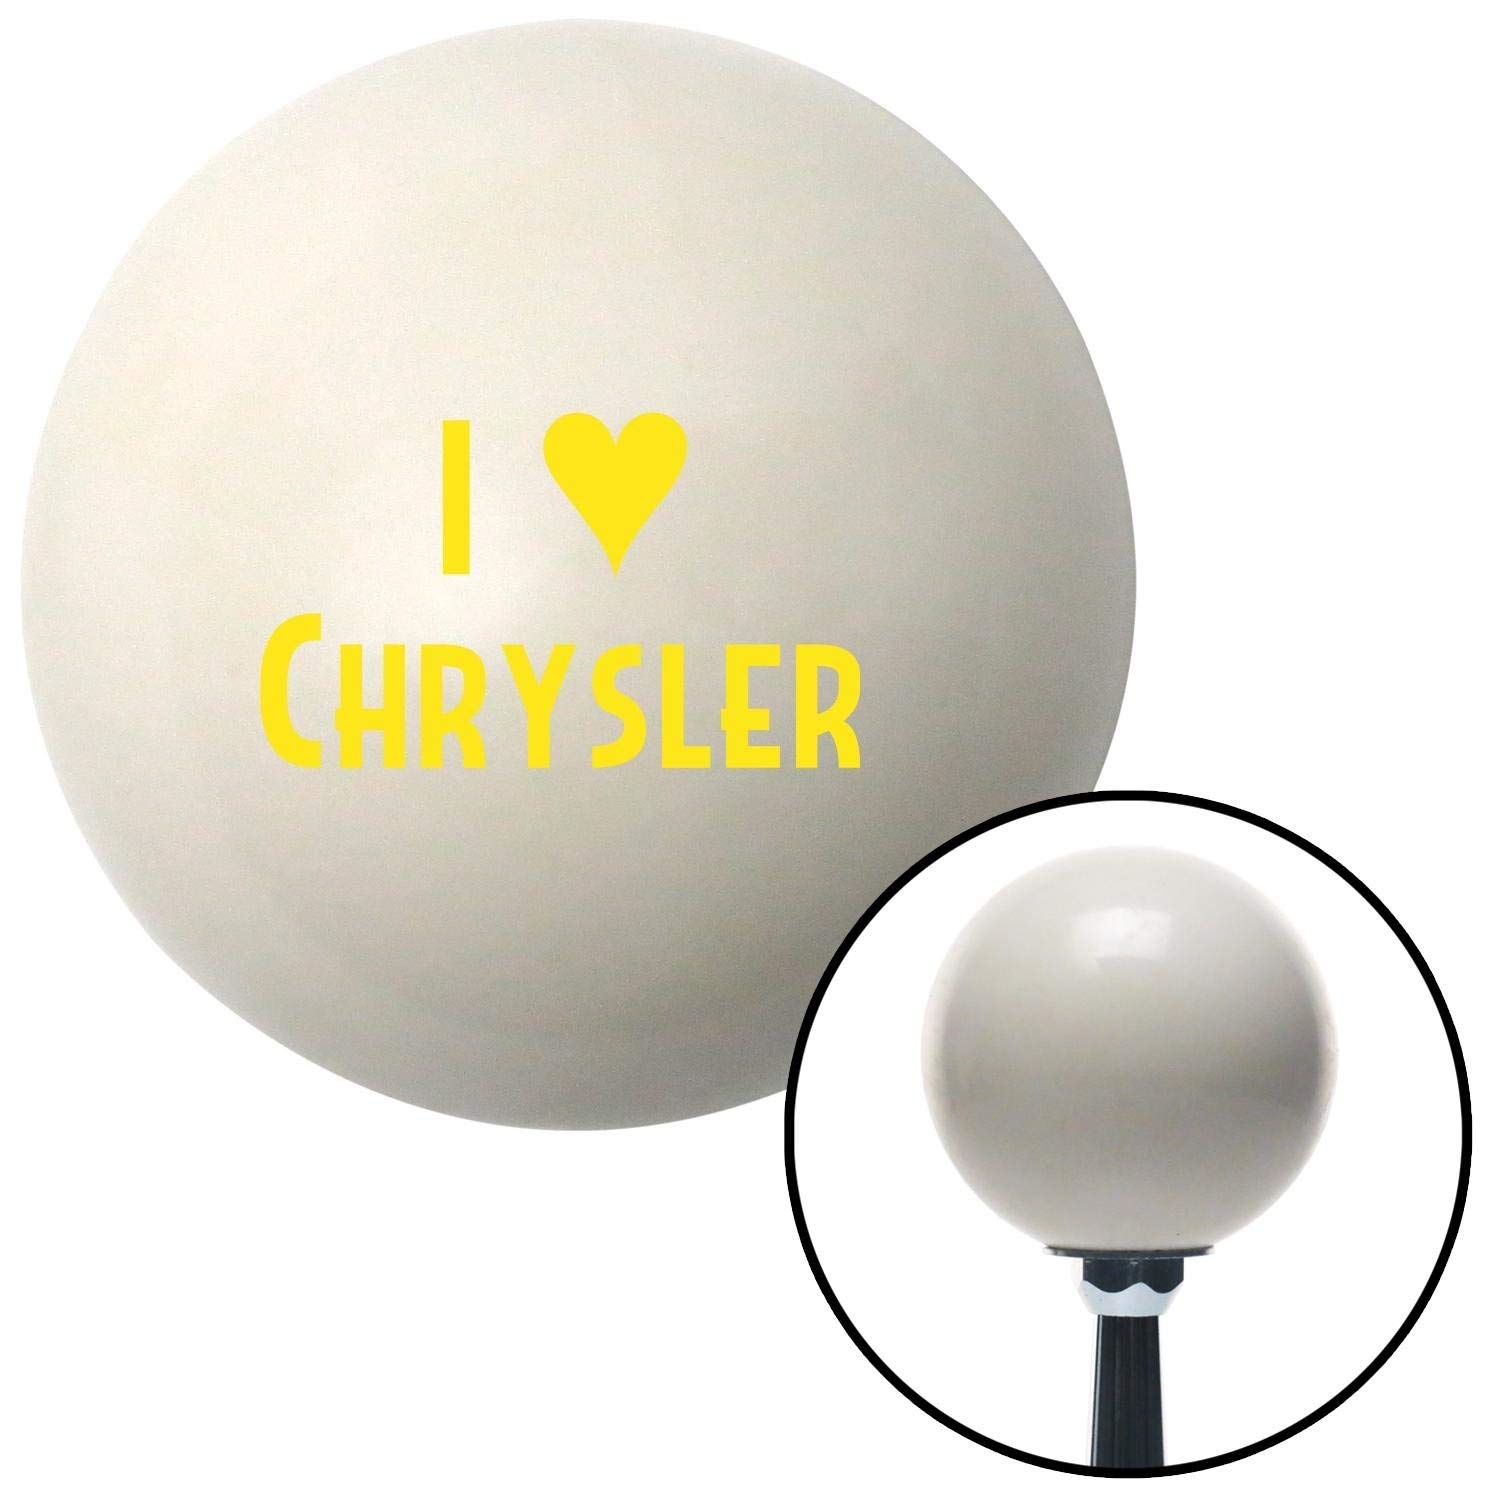 American Shifter 31313 Ivory Shift Knob with 16mm x 1.5 Insert Yellow I 3 Chrysler